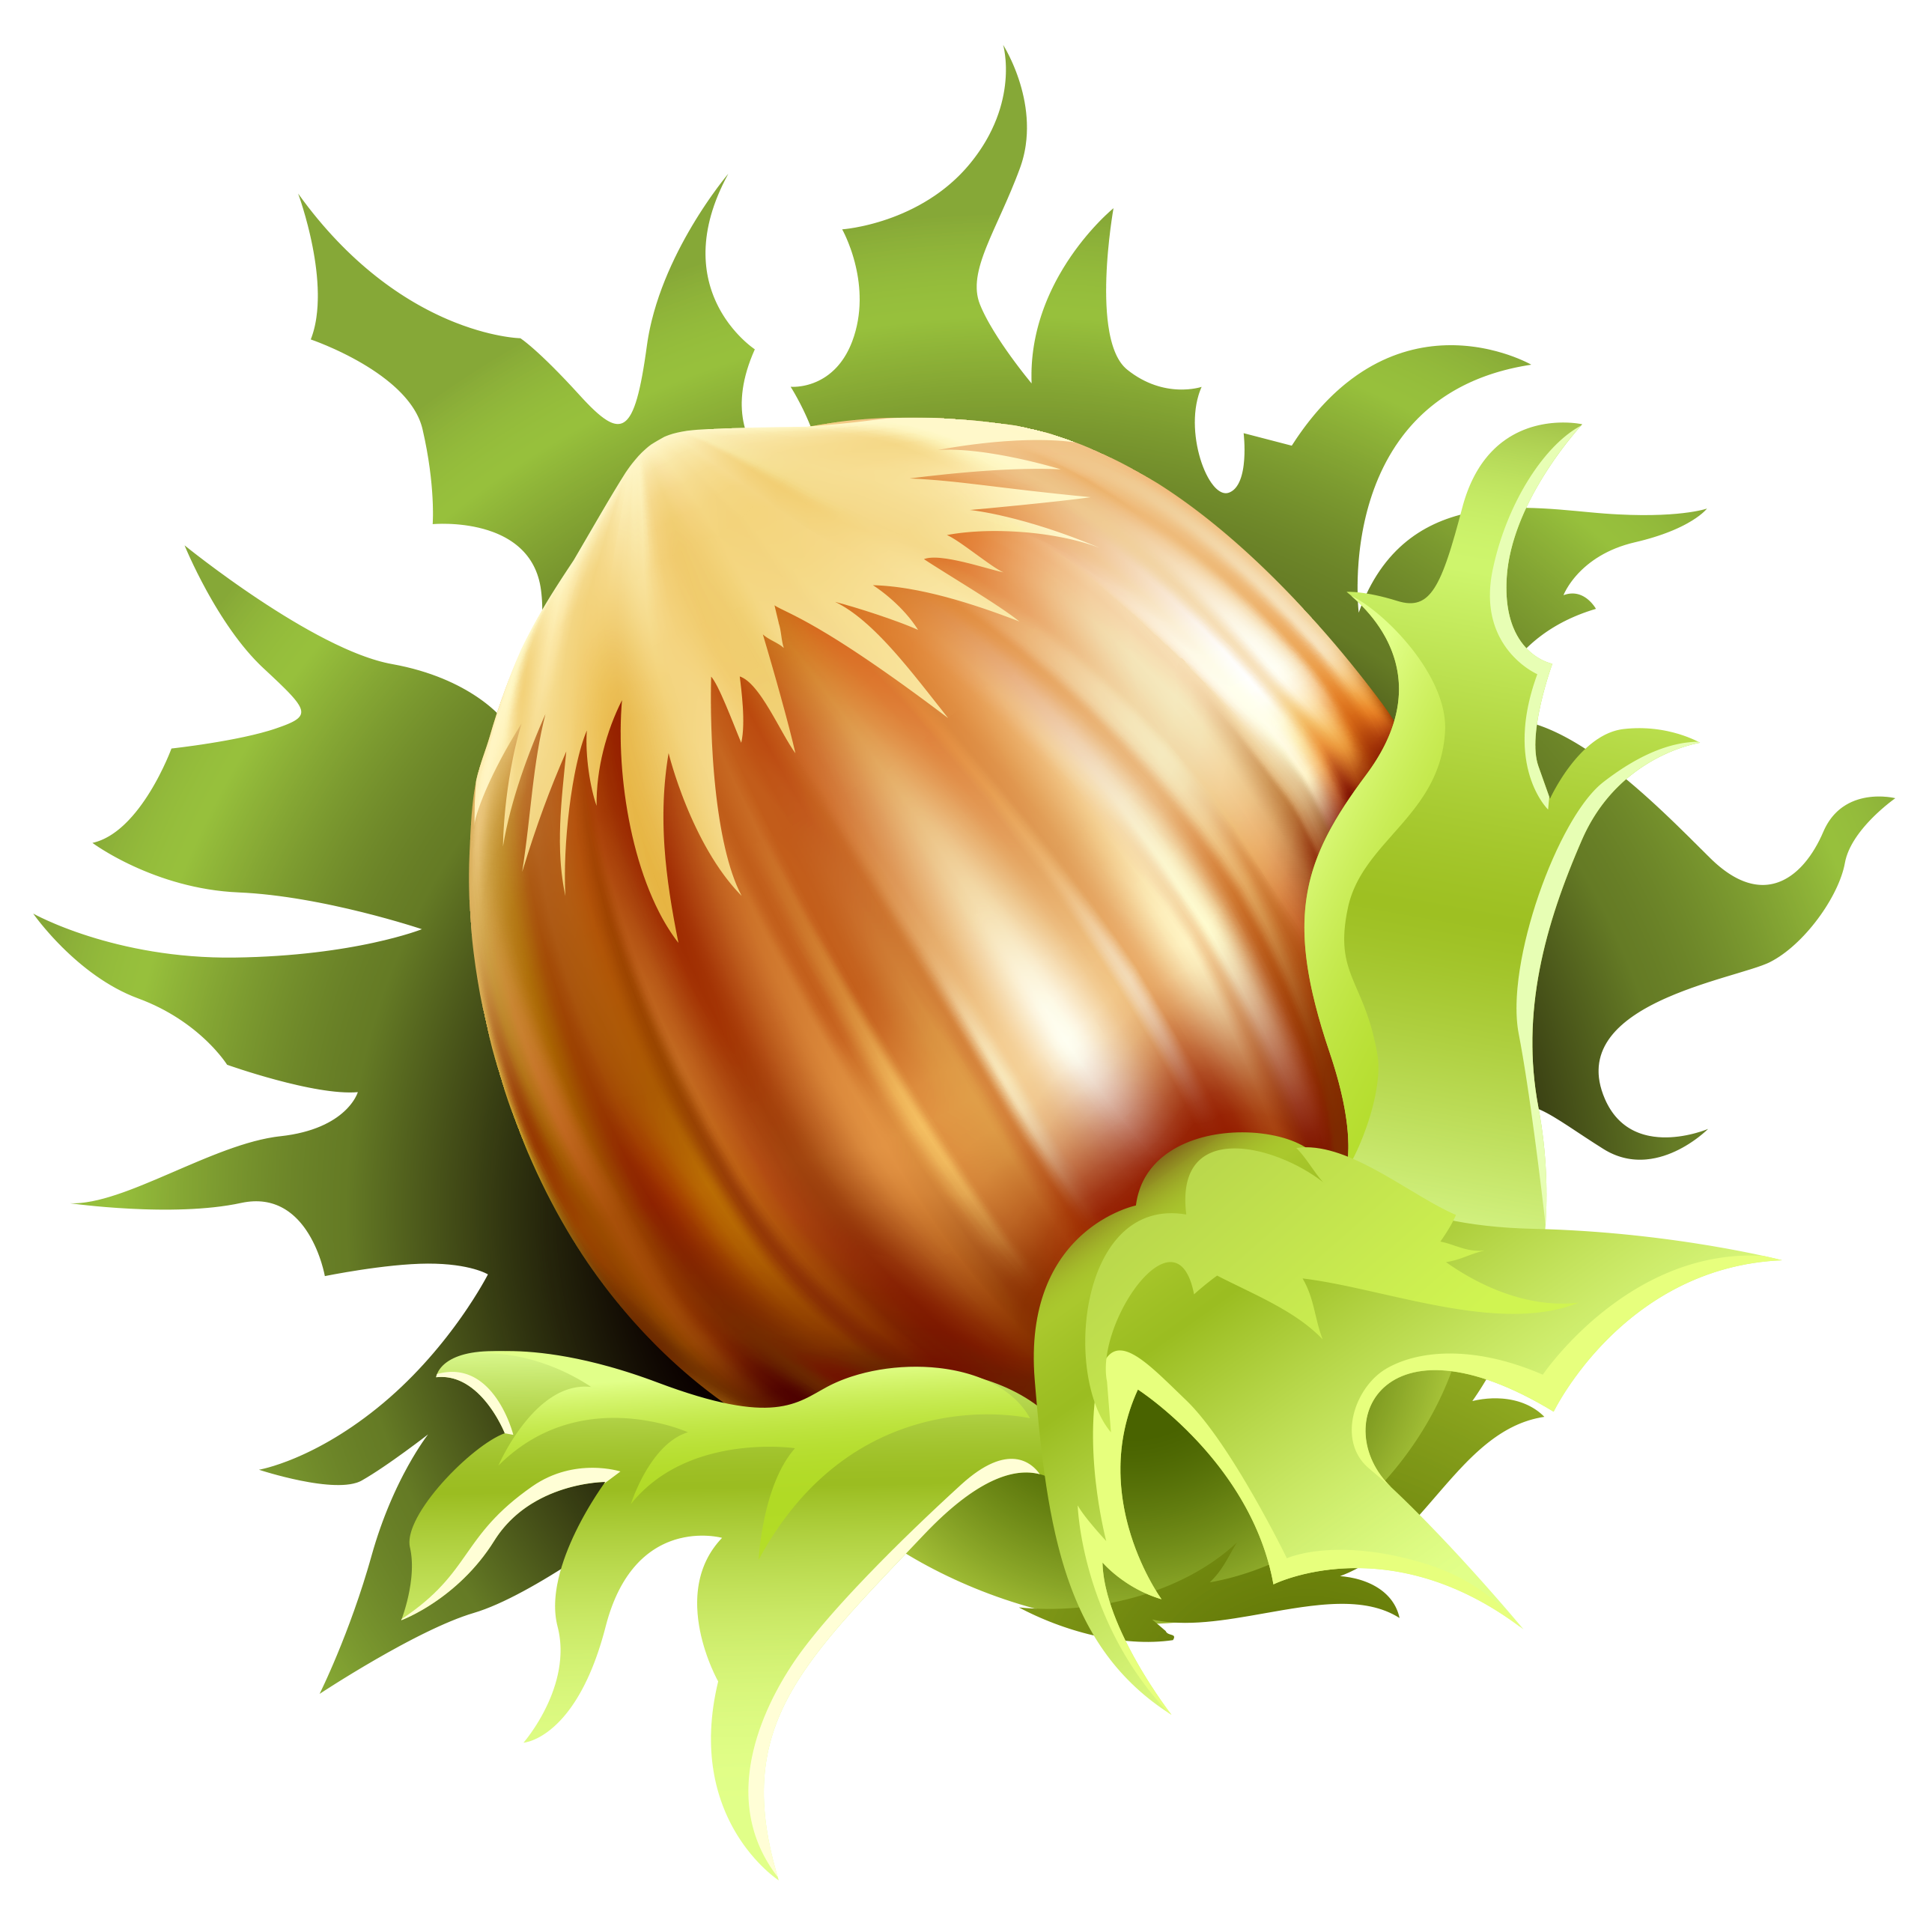 Hazelnut png image gallery. Gardening clipart crop production